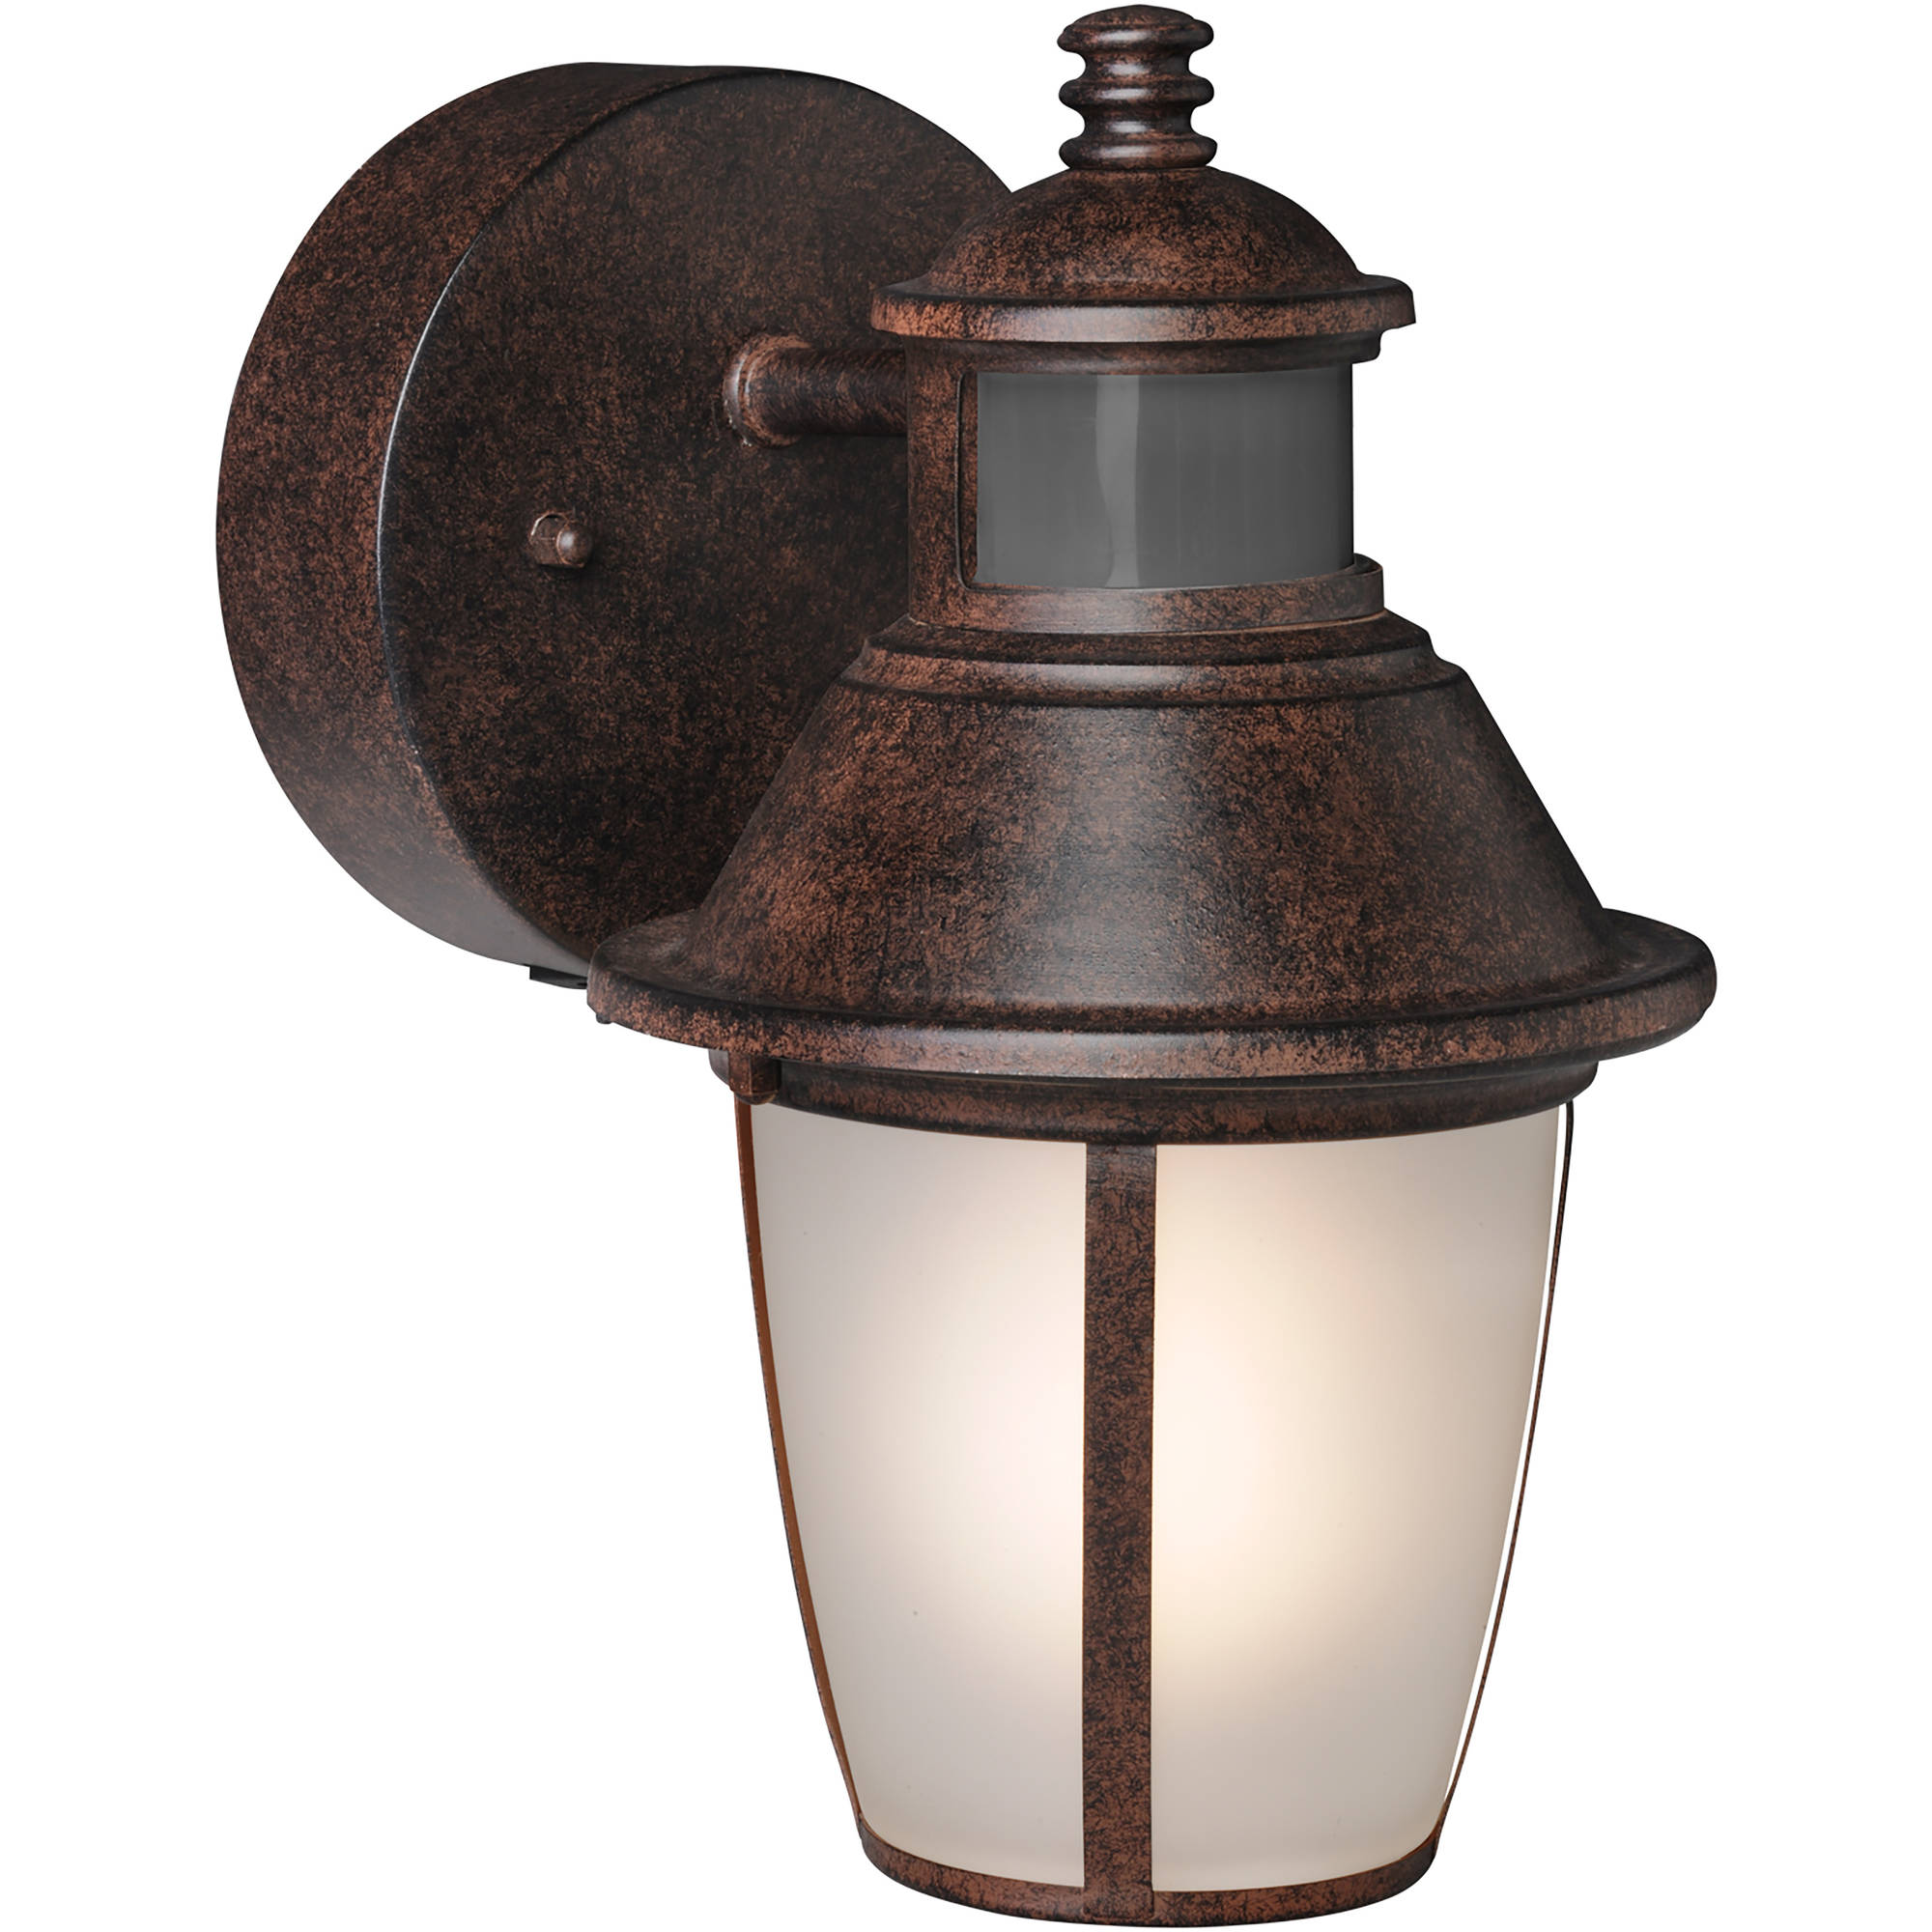 Brink S Led Outdoor Wall Lantern Motion Security Light Bronze